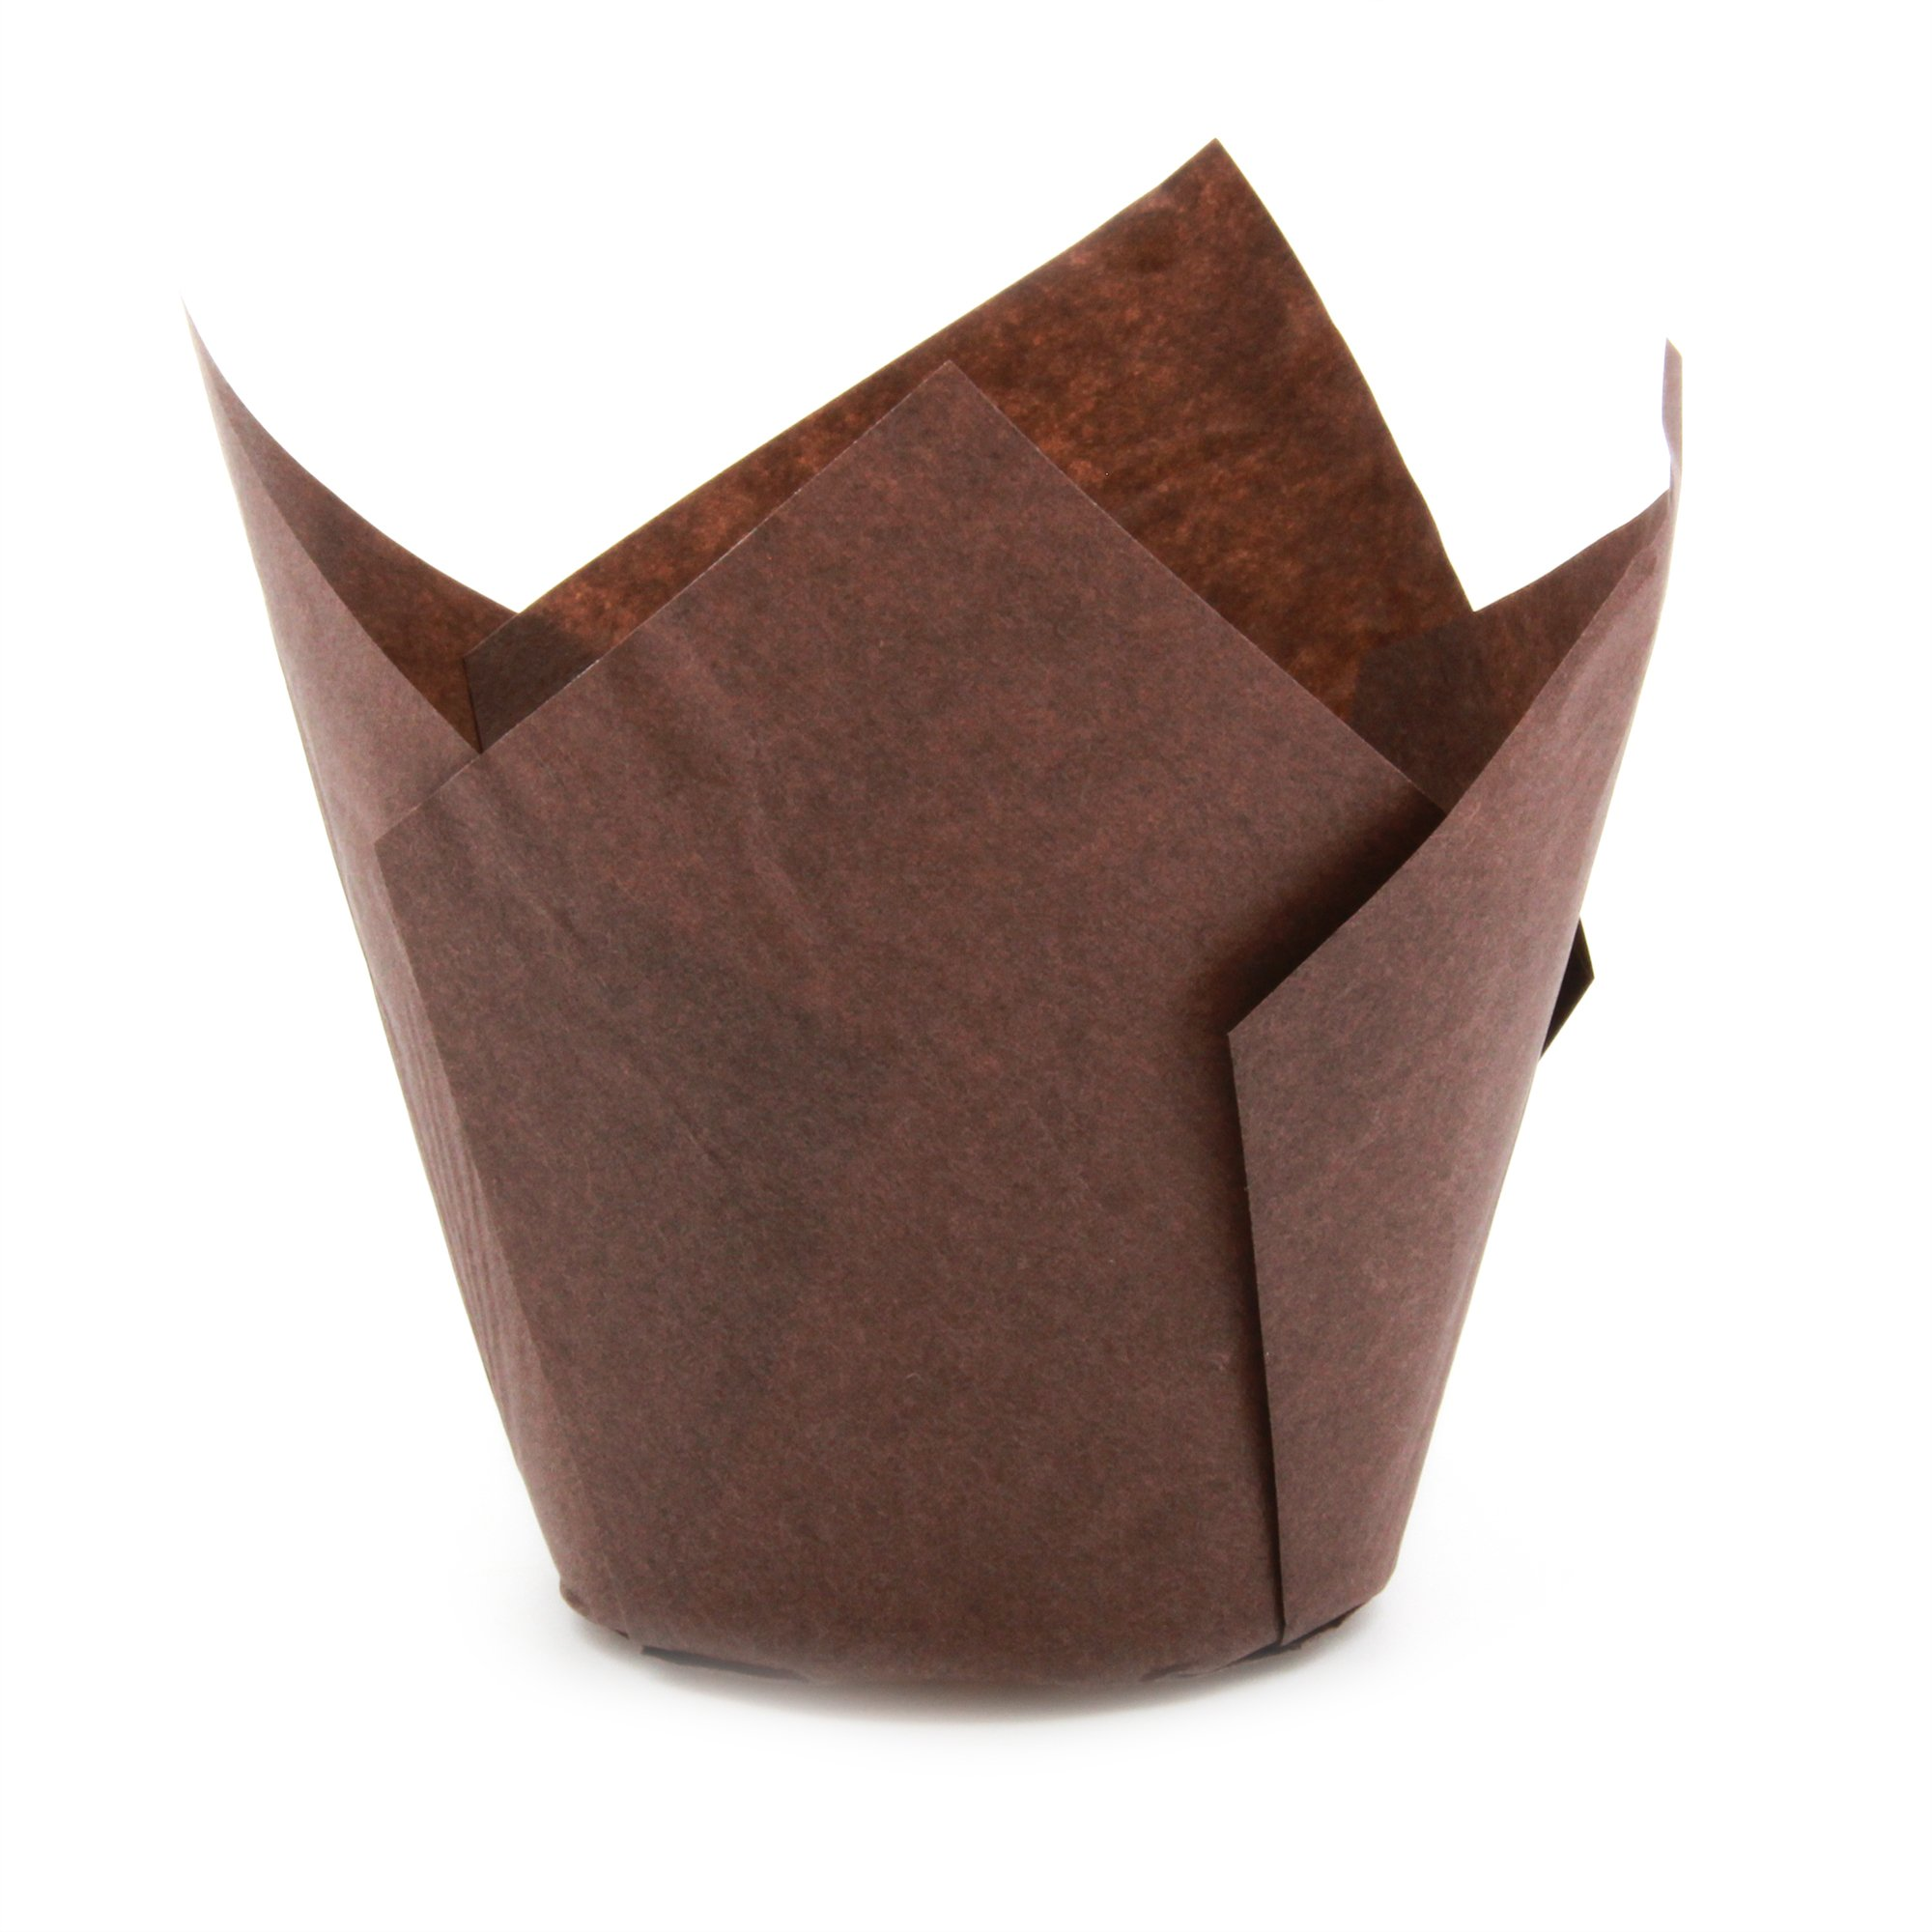 Brown Tulip Baking Cups, Large Size, Pack of 200